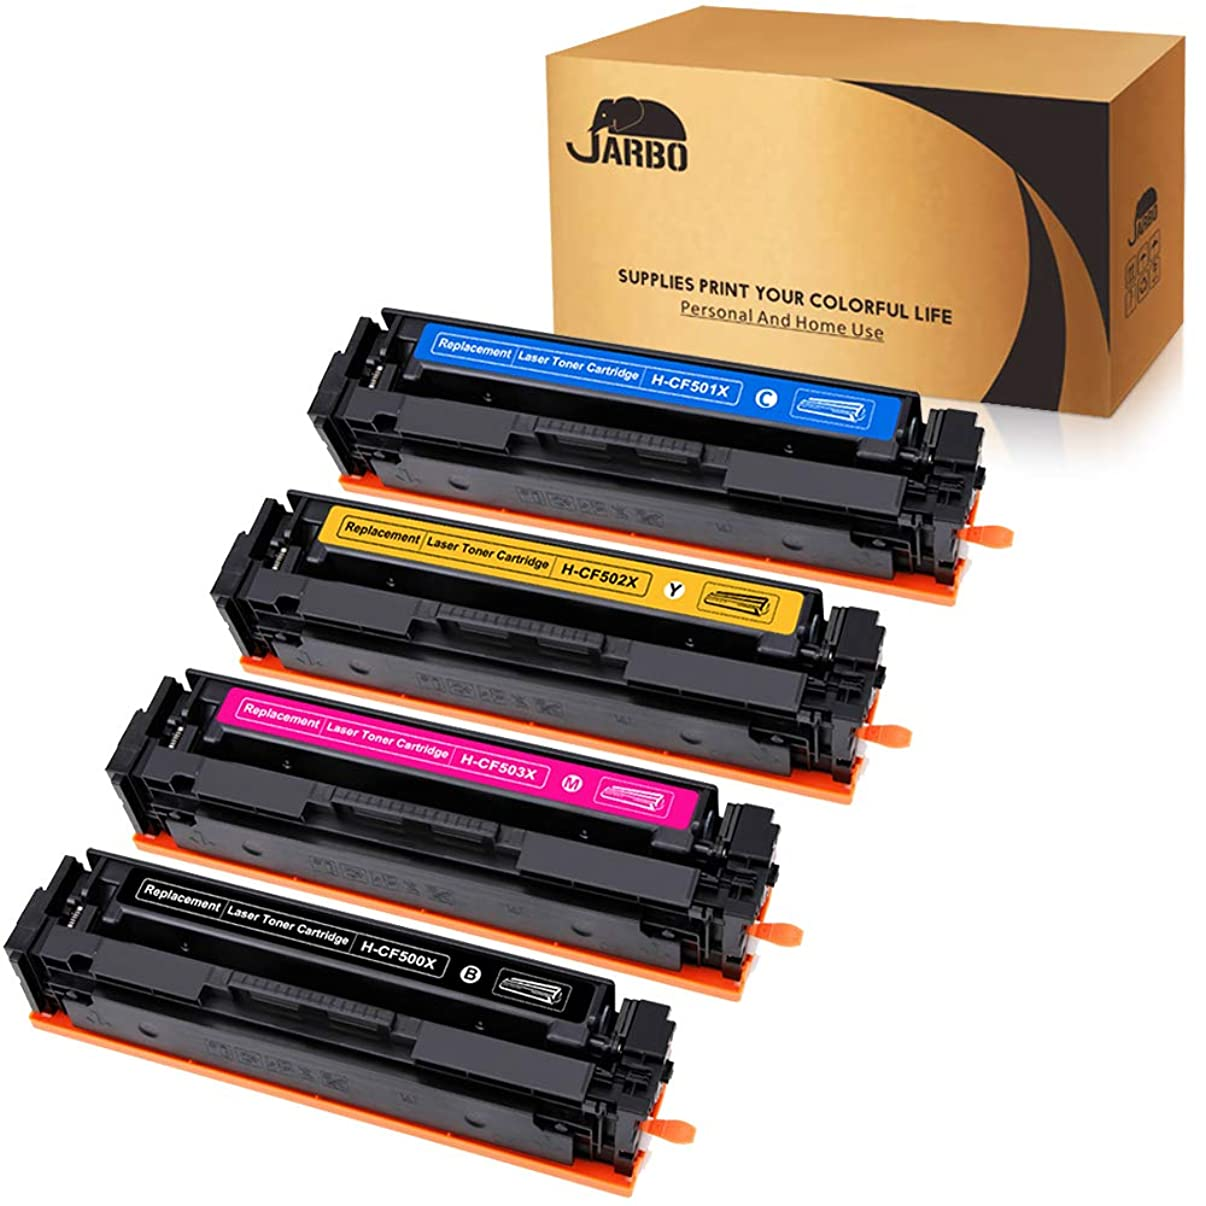 Compatible HP 202X 202A Toner Cartridges, JARBO 1 Set (Black-CF500X, Cyan-CF501X, Yellow-CF502X, Magenta-CF503X), Compatible with HP Laserjet Pro MFP M281fdw M254dw M281cdw M254nw M280nw Printer